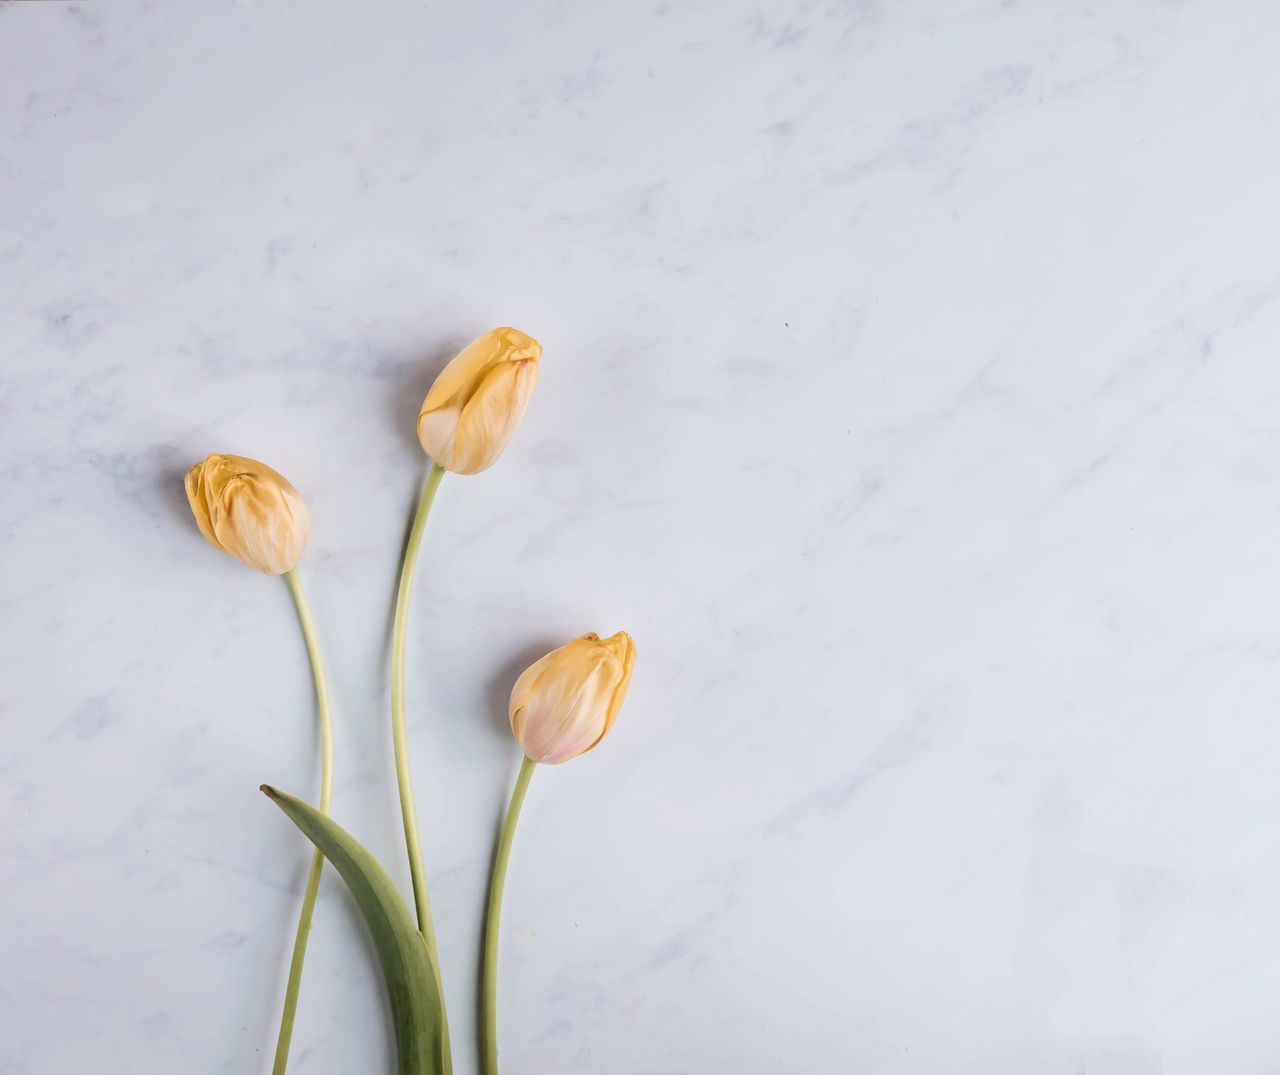 Tulip Tulips On The Table Flower Petal White Background Marble Flower Head No People Close-up Fragility Day Freshness Orange Color Blooming Nature Plant Growth Beauty In Nature Outdoors Marble Table Still Life StillLifePhotography Still Life Stilllife Nature Color